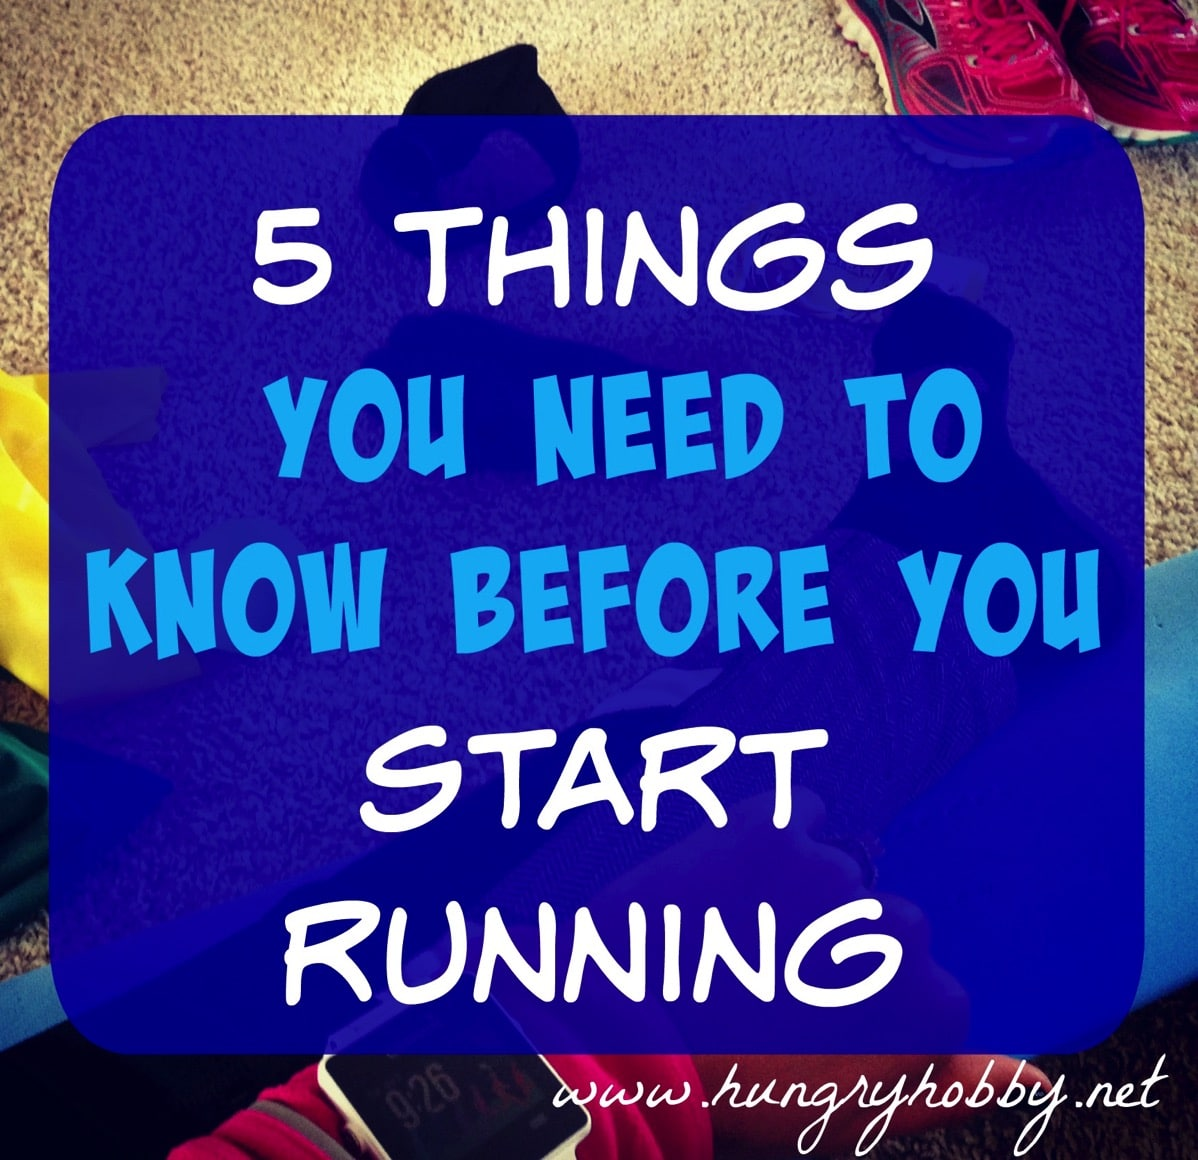 Before running